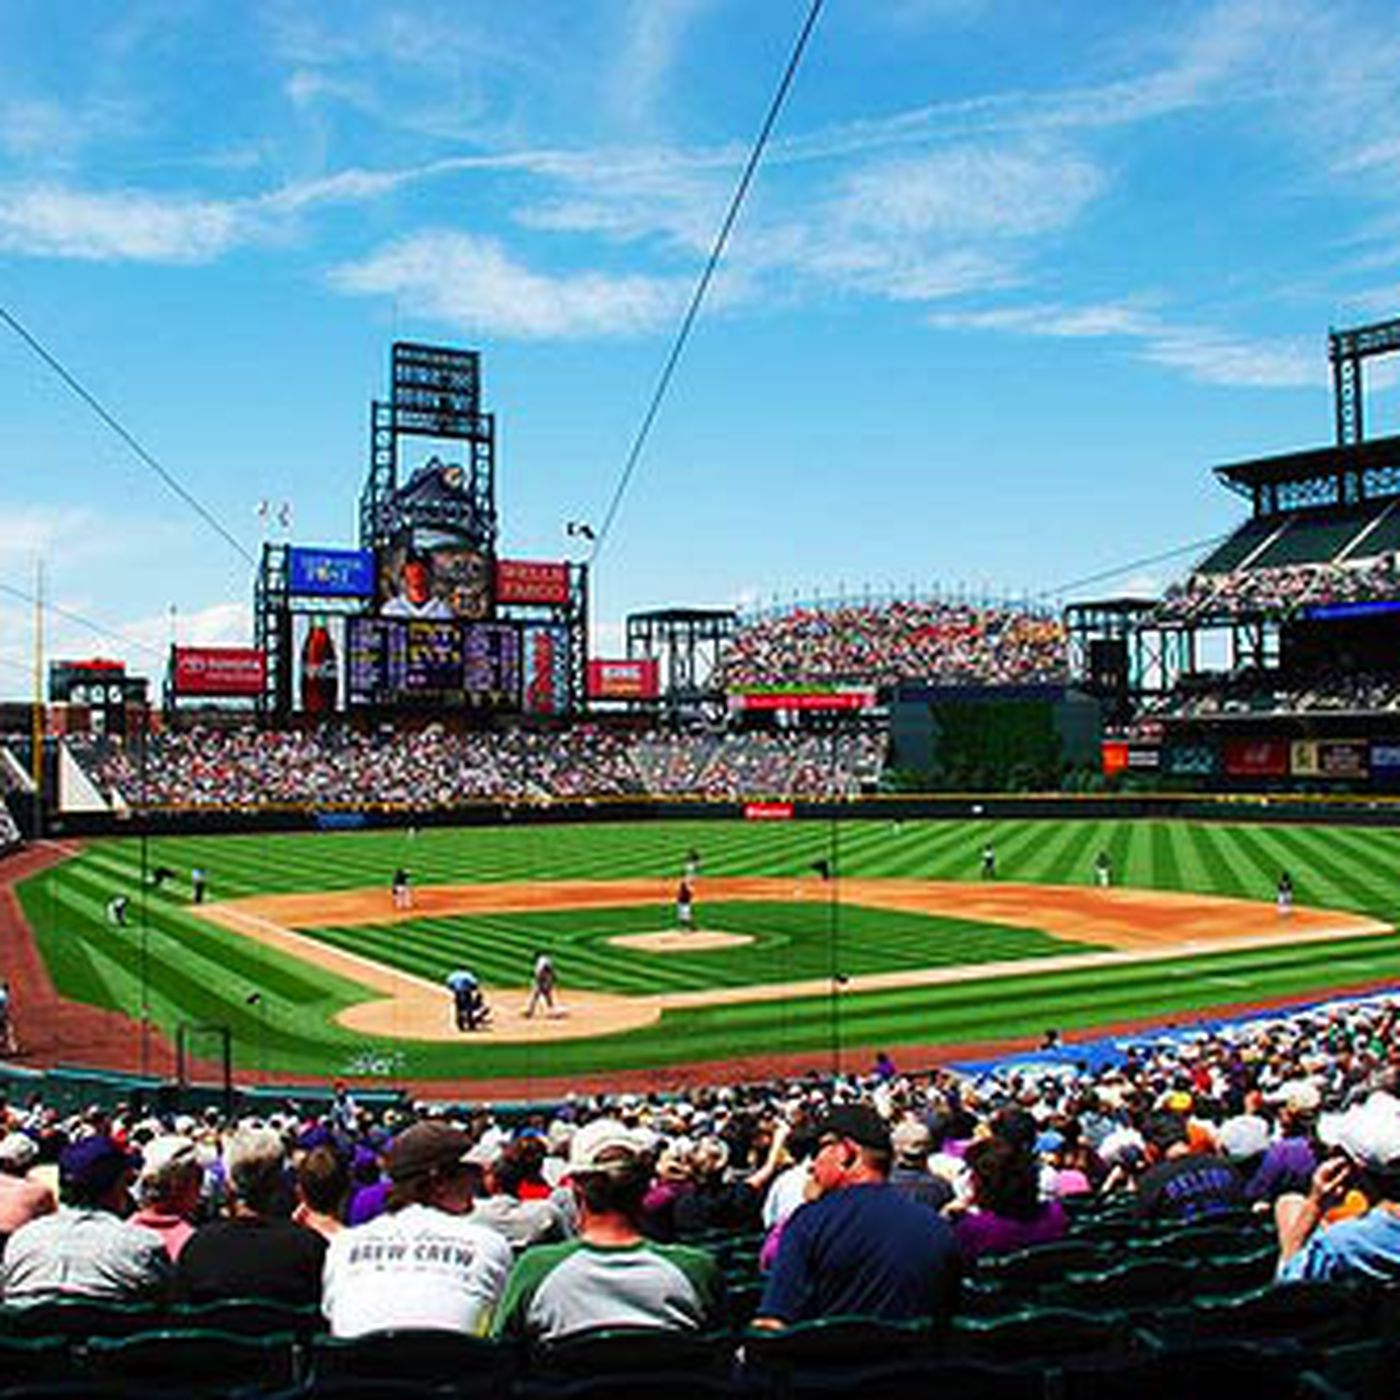 Rockies Stadium Map | www.tollebild.com